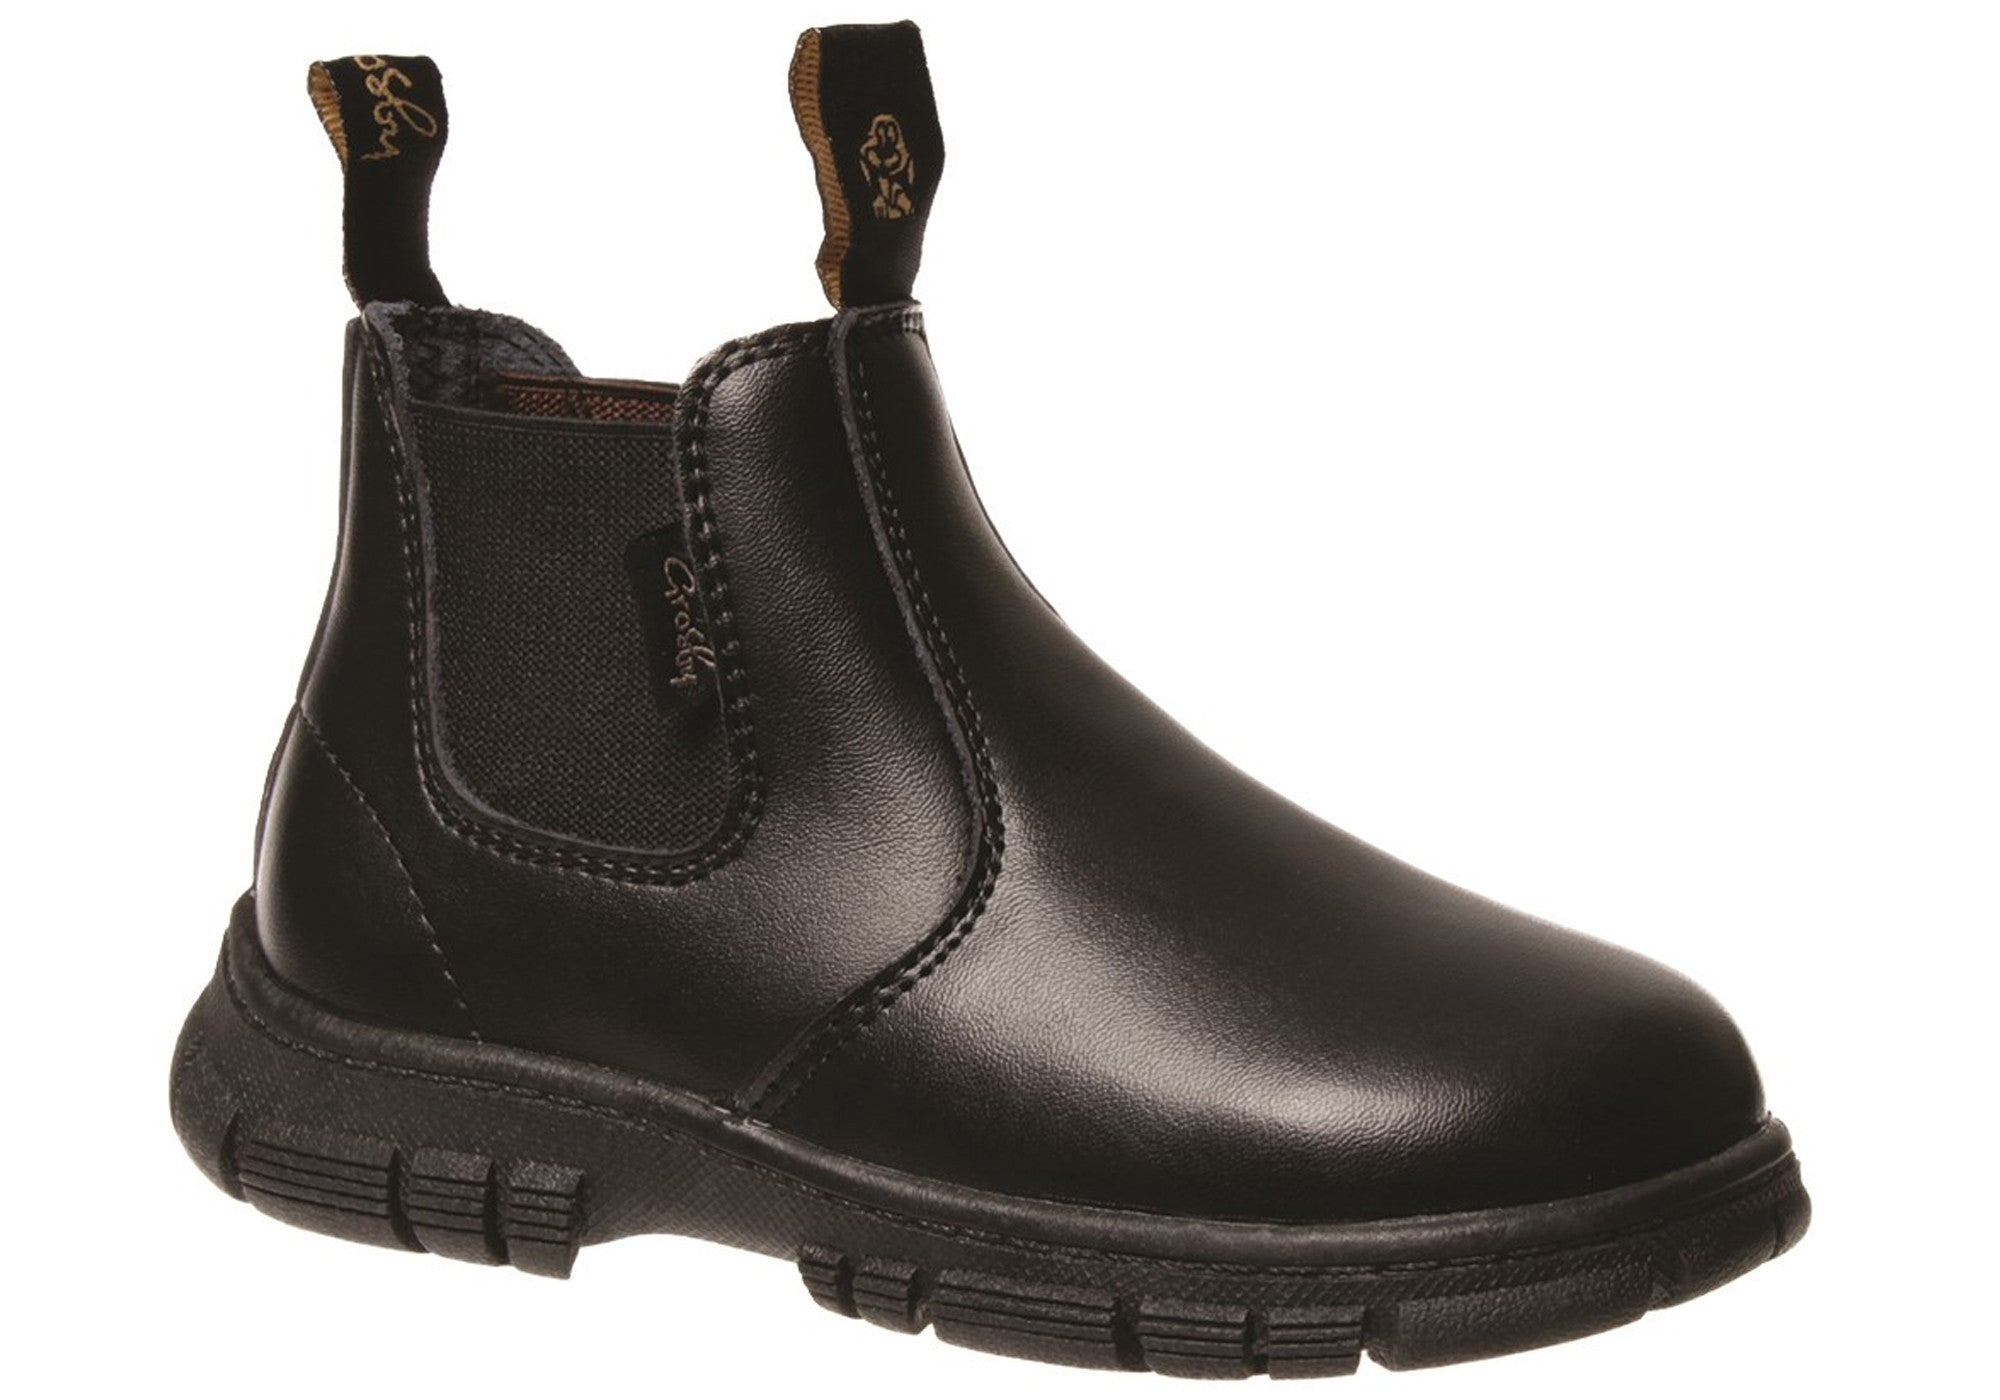 6711f5995f2 Home Grosby Ranch Junior Kids Leather Pull On Boots. Black ...